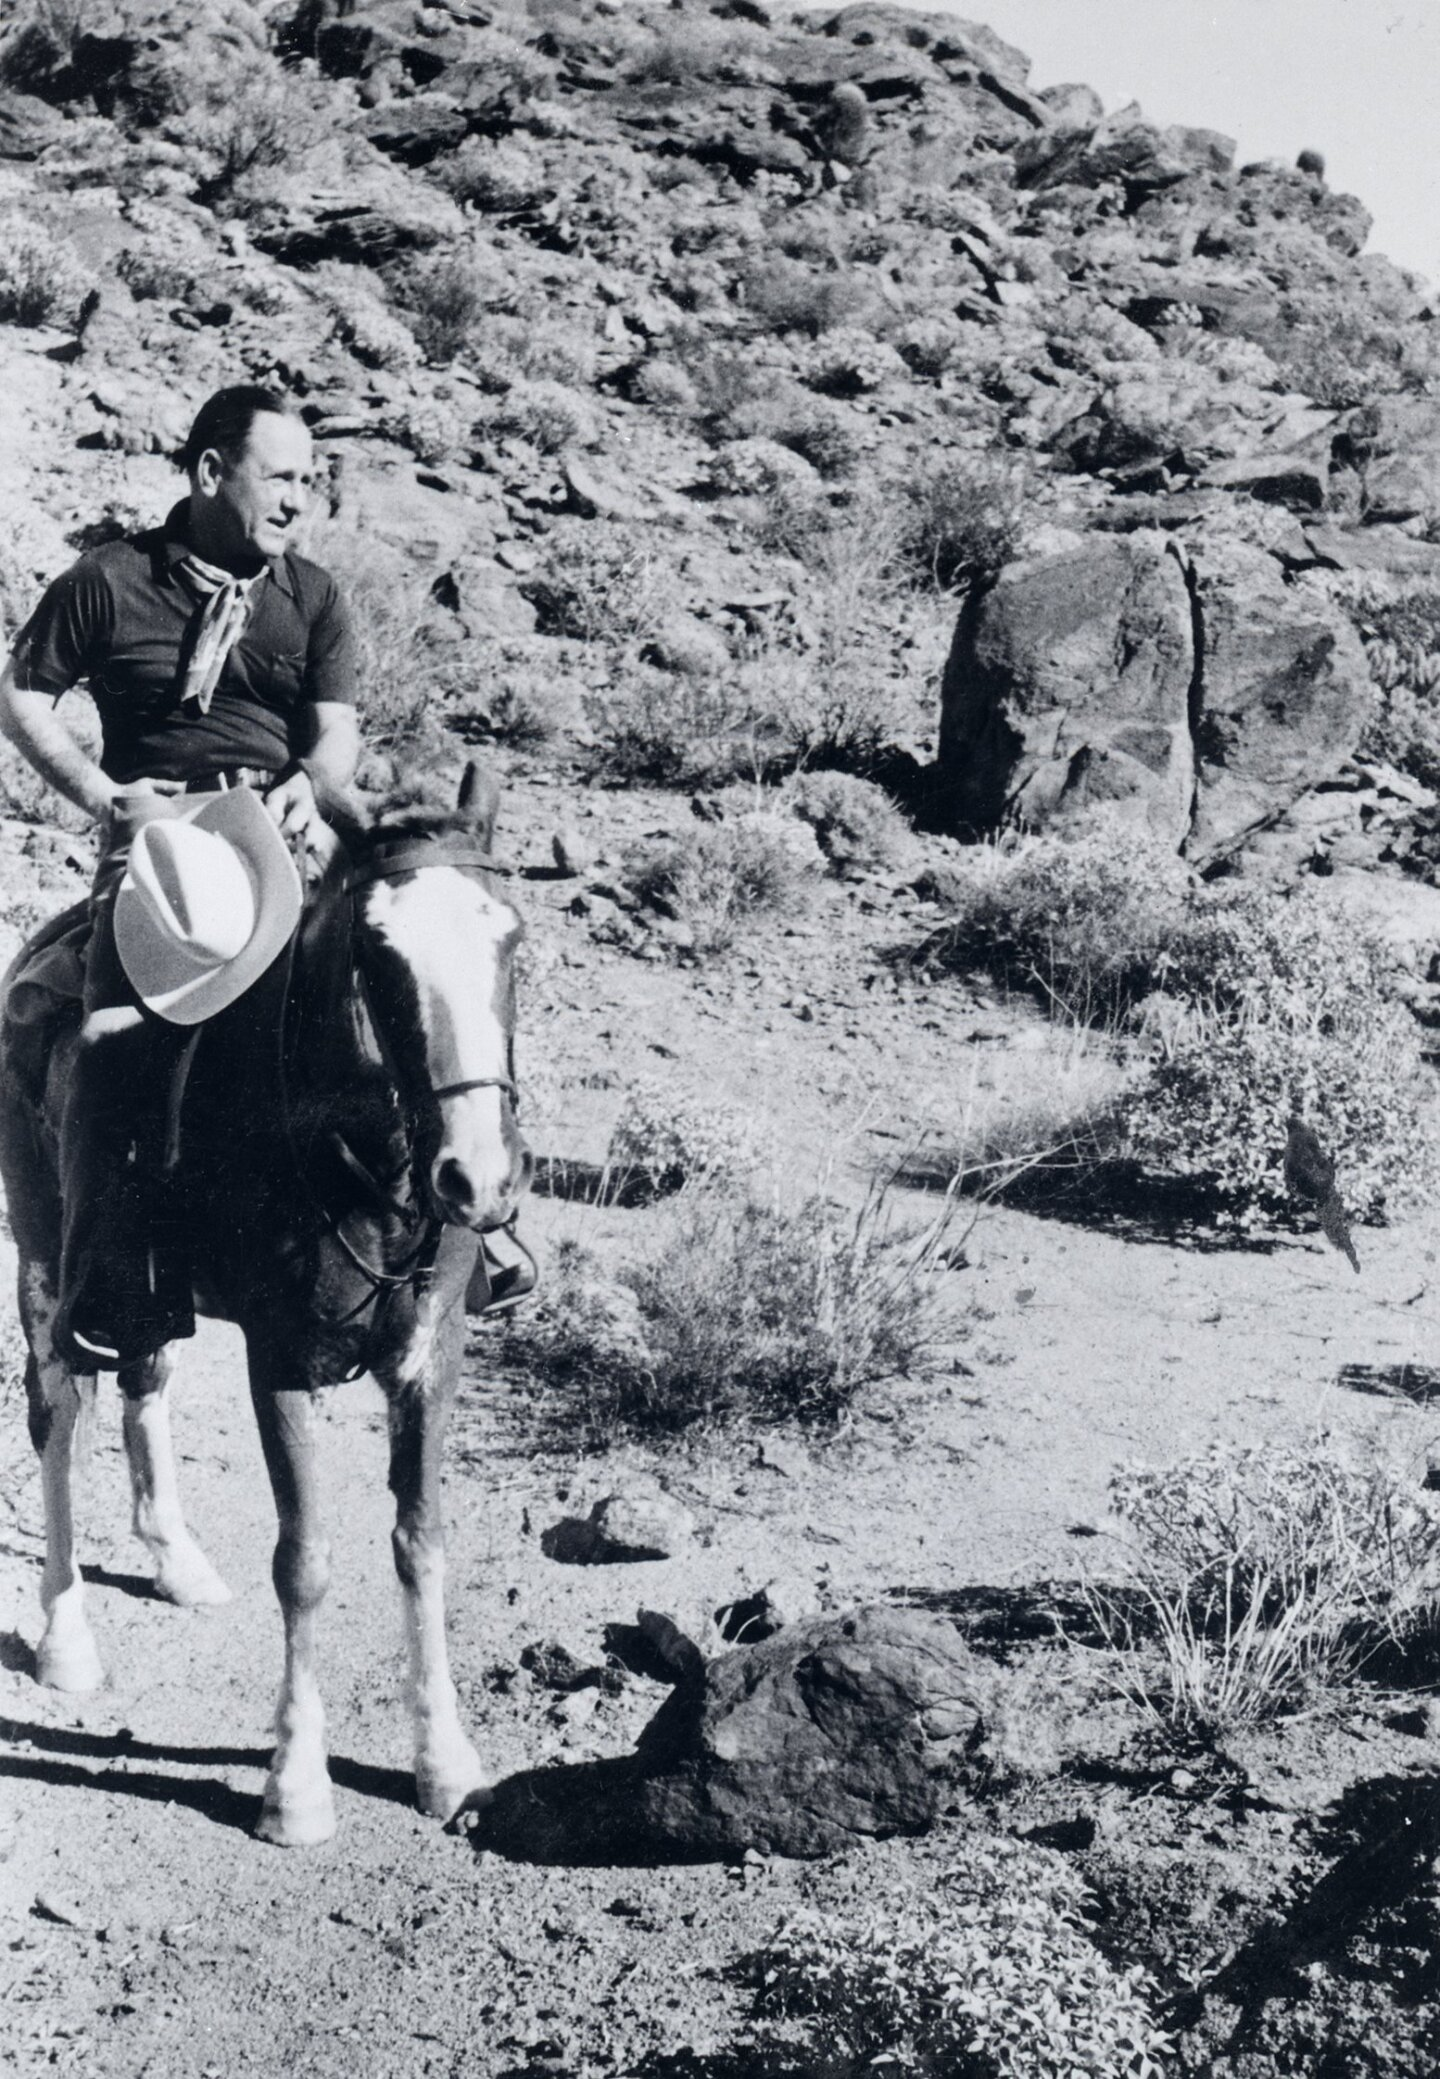 Harry Bennett rode on horseback in the desert.